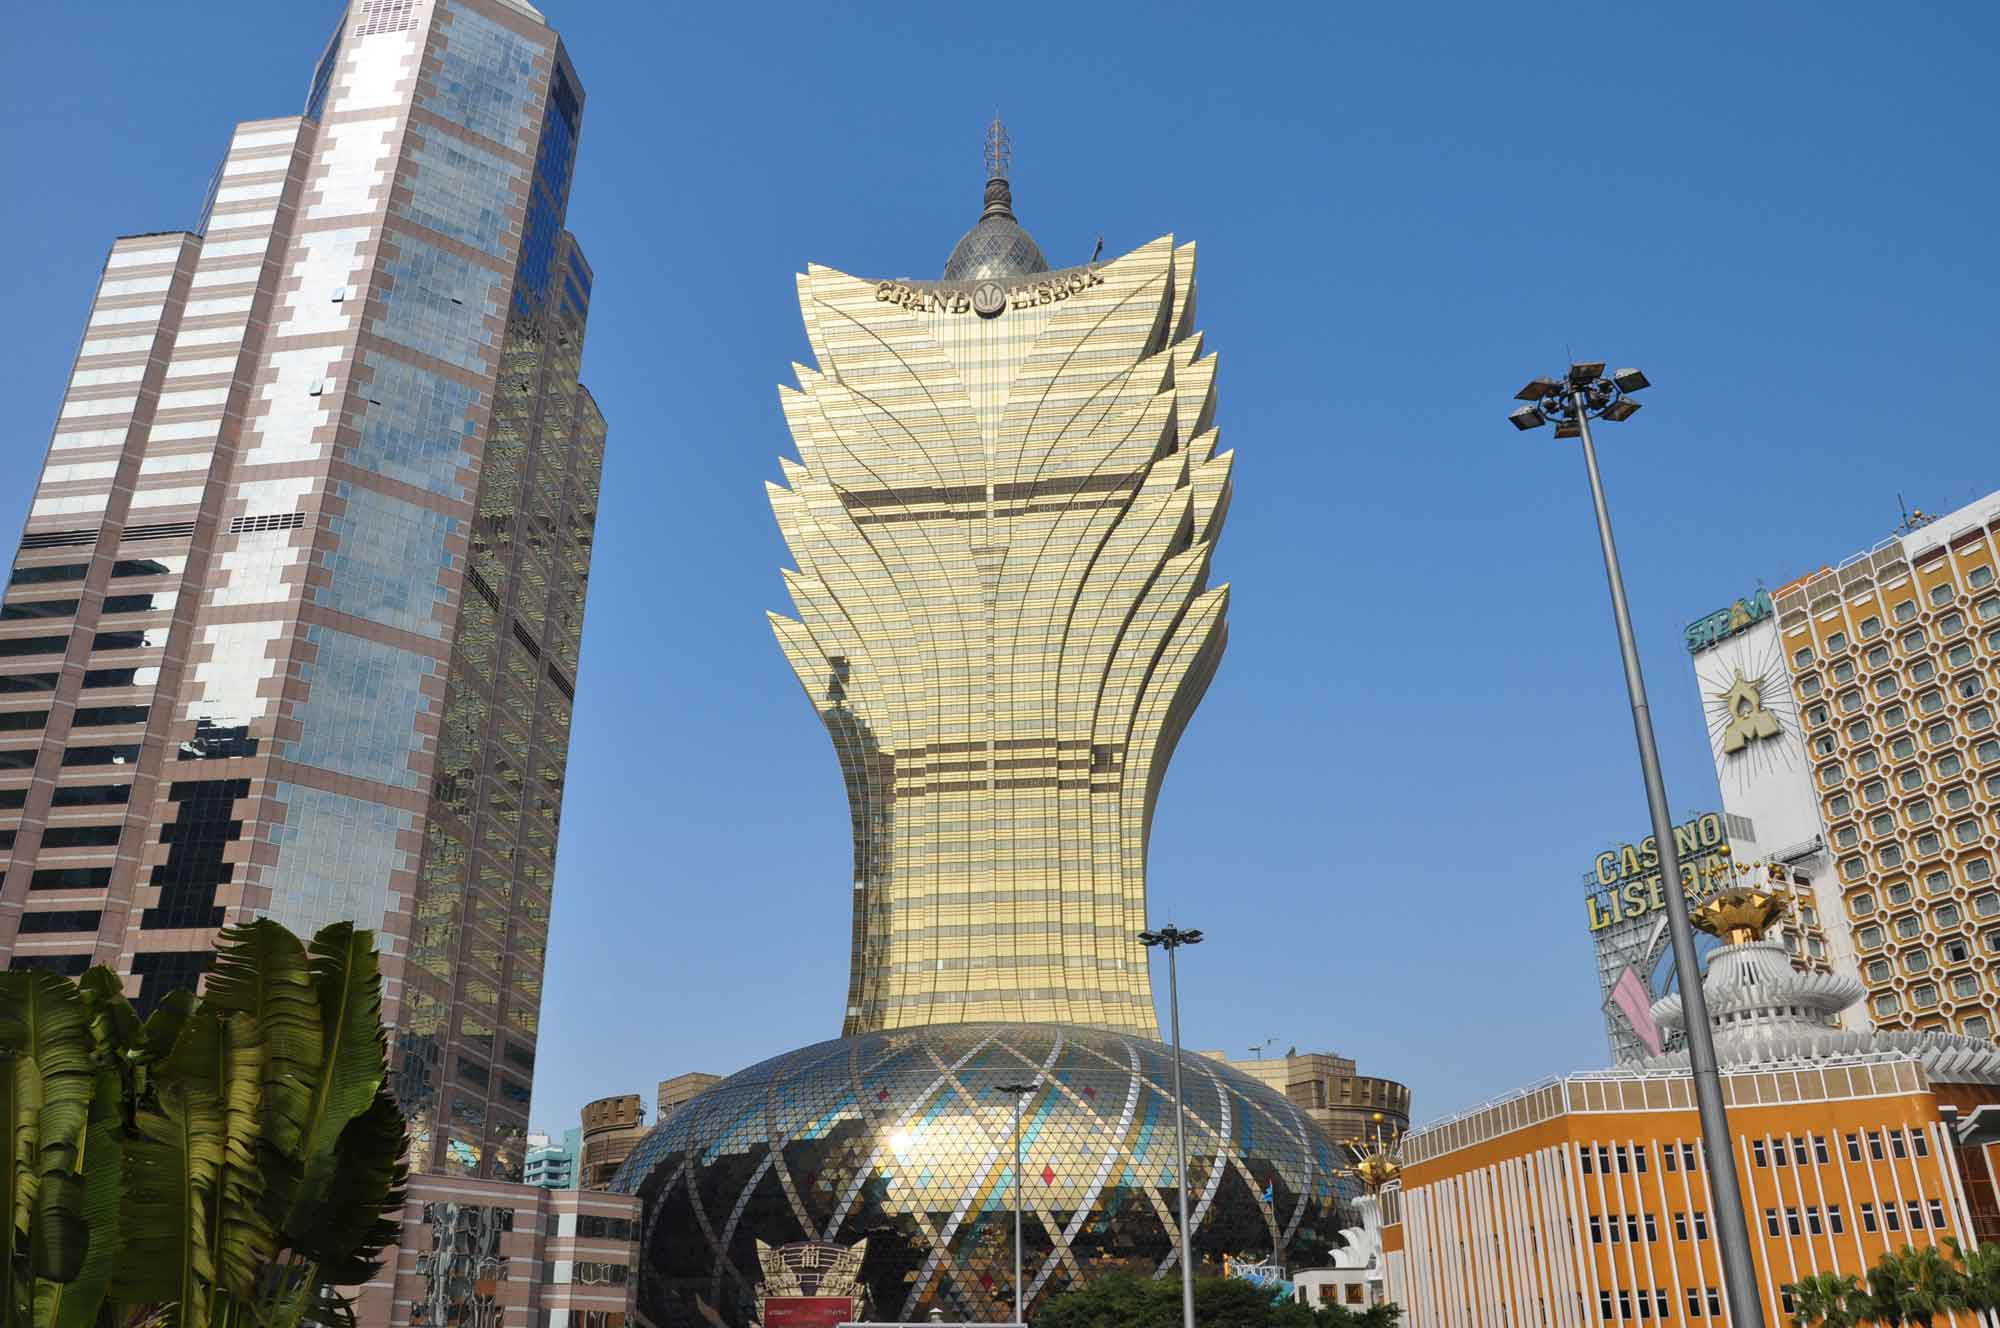 Grand Lisboa outside